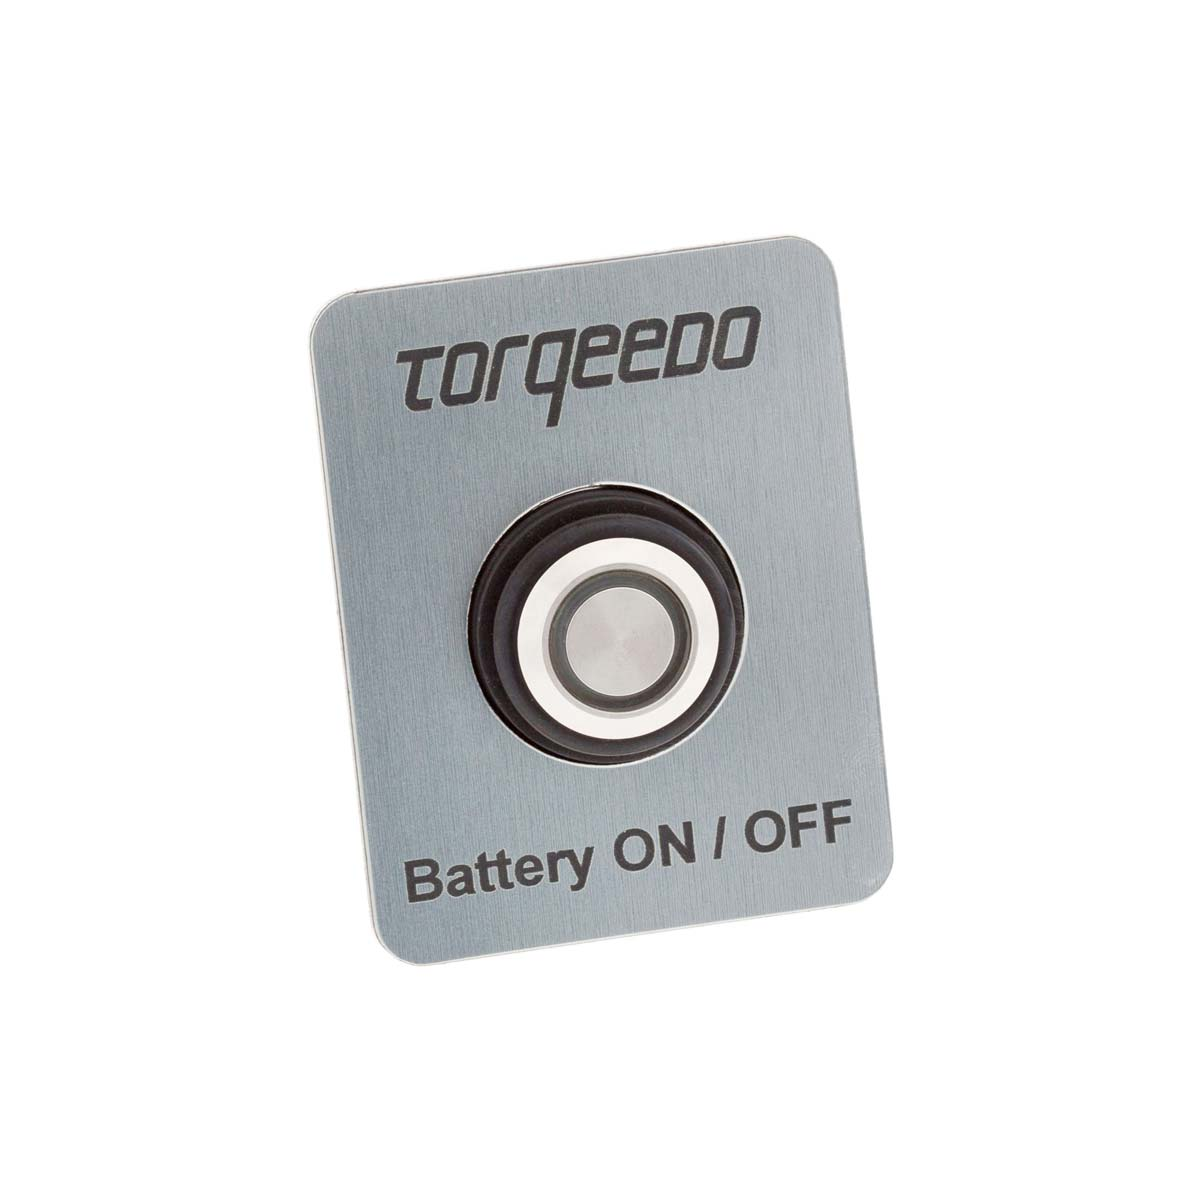 Torqeedo On/off switch Power 24-3500 (26-104)